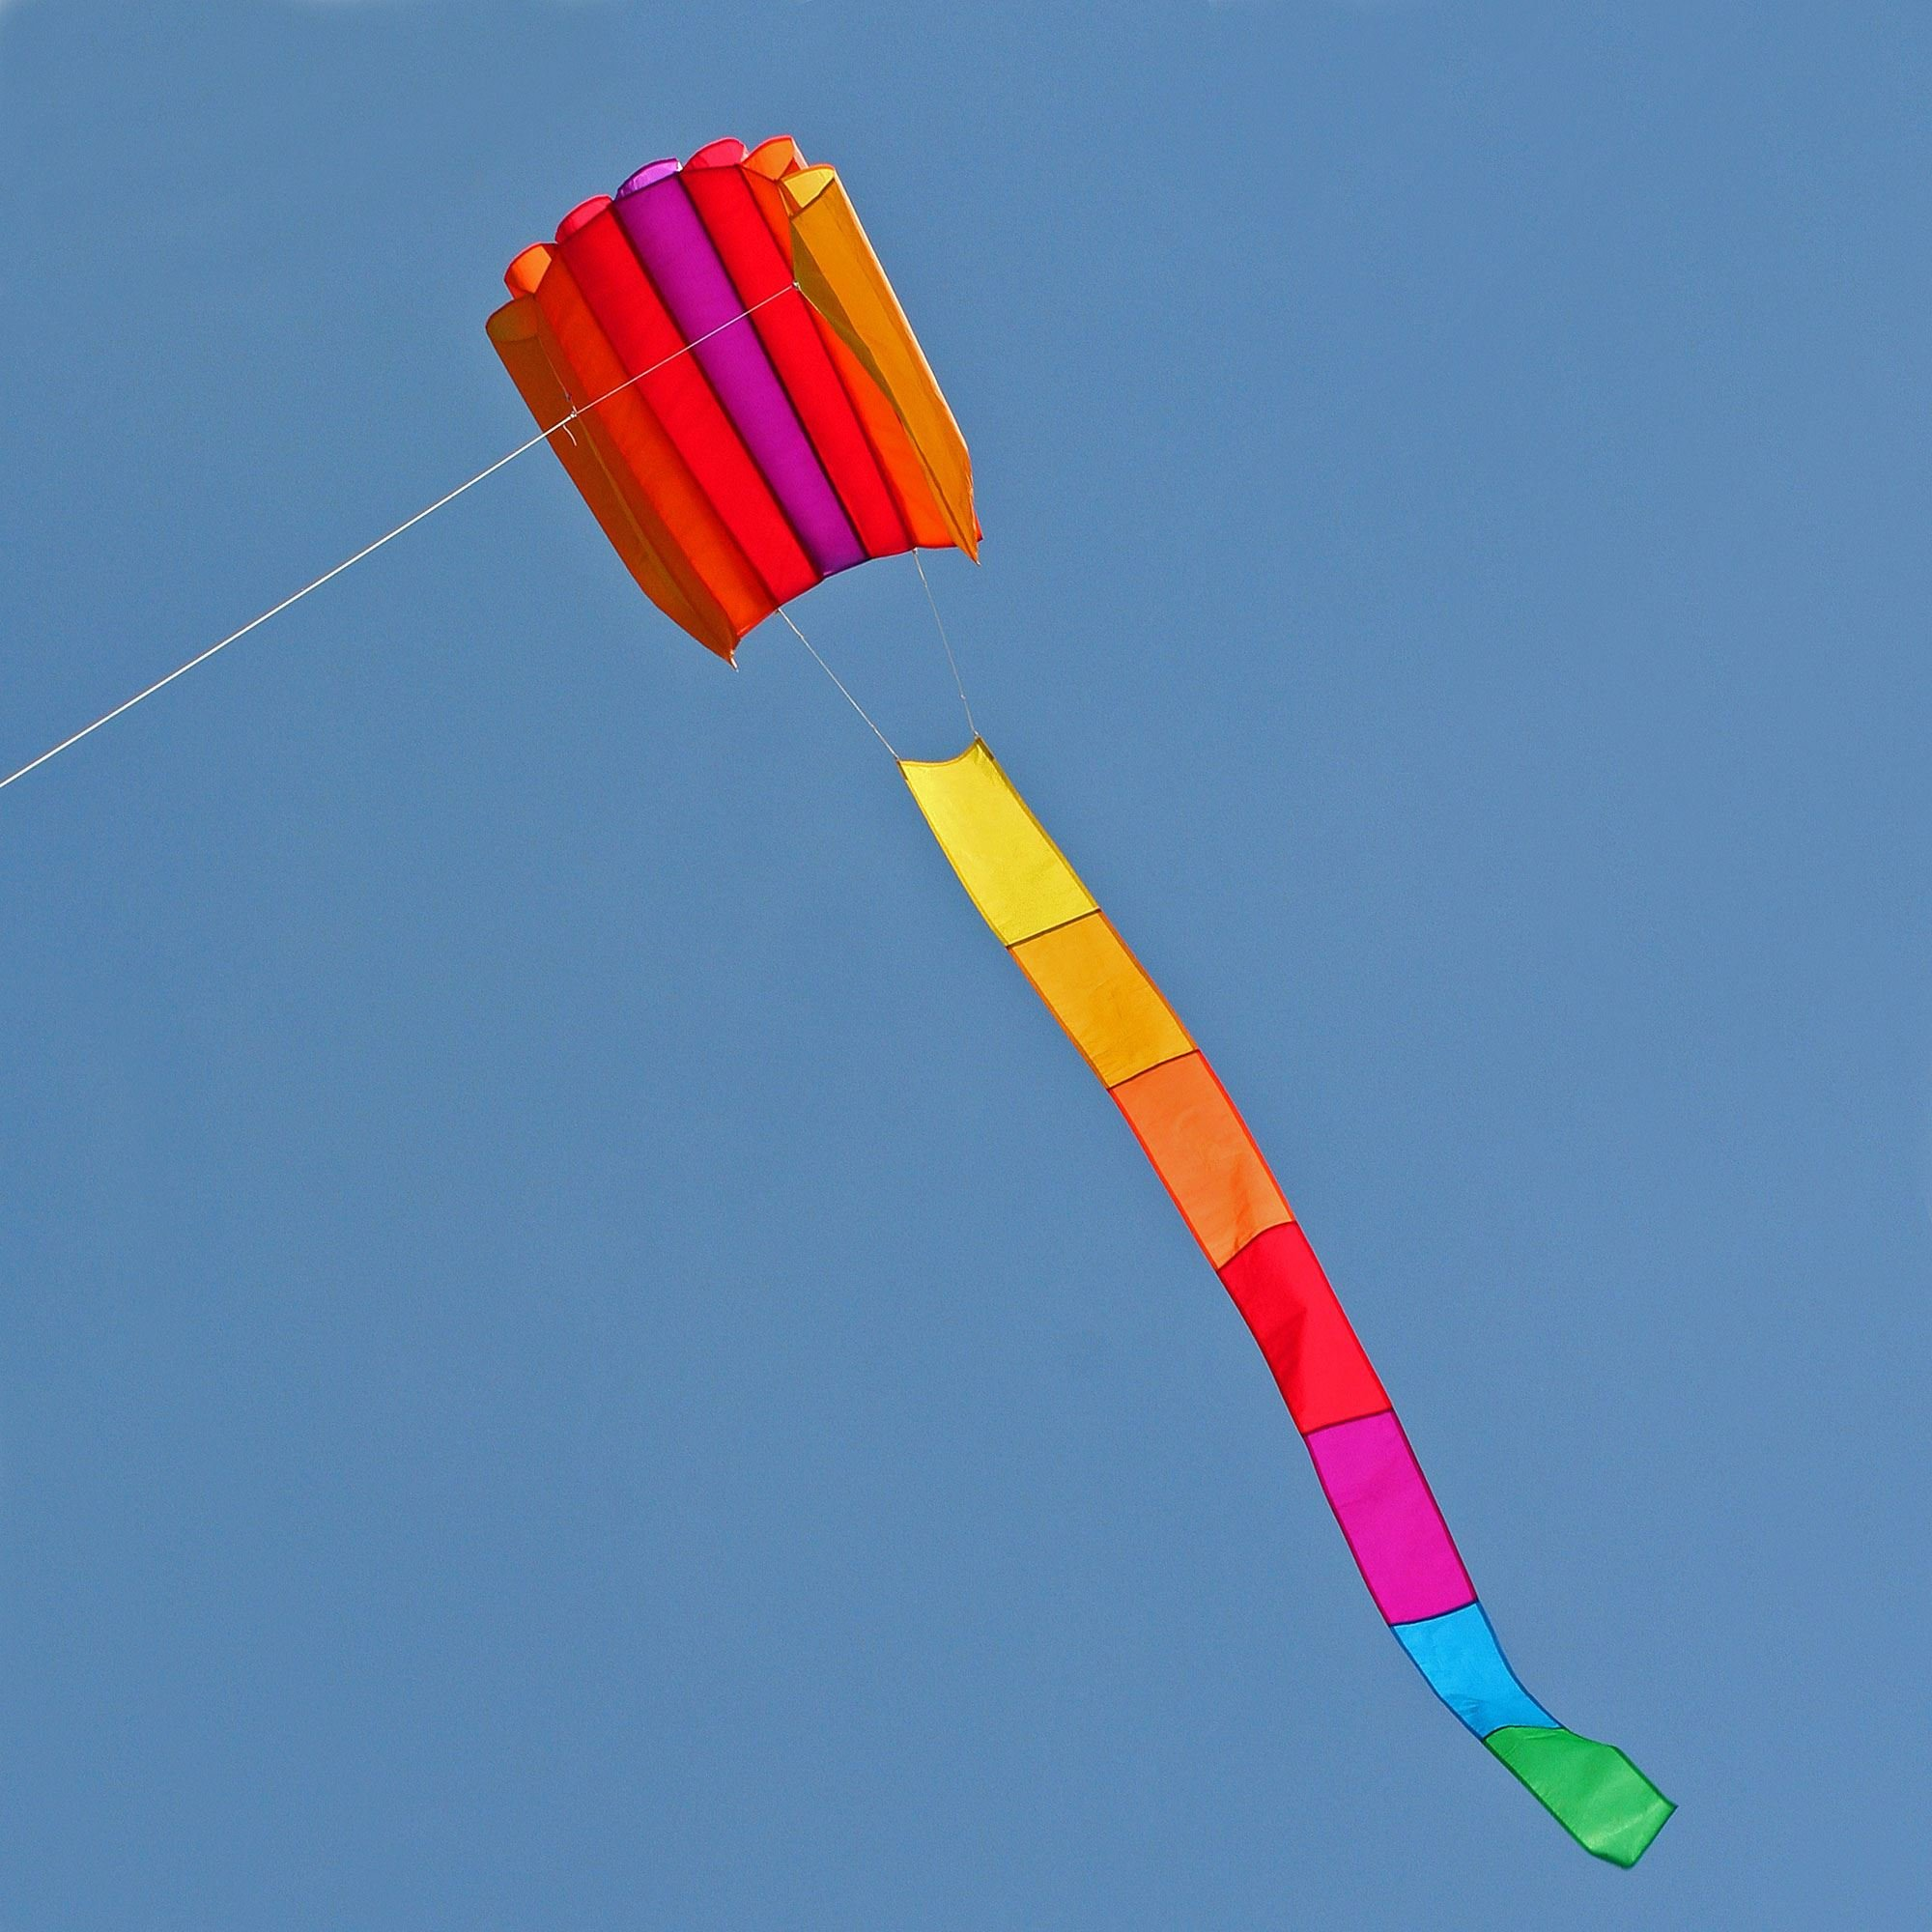 Into The Wind Pan Flute Sled Kite by Into The Wind